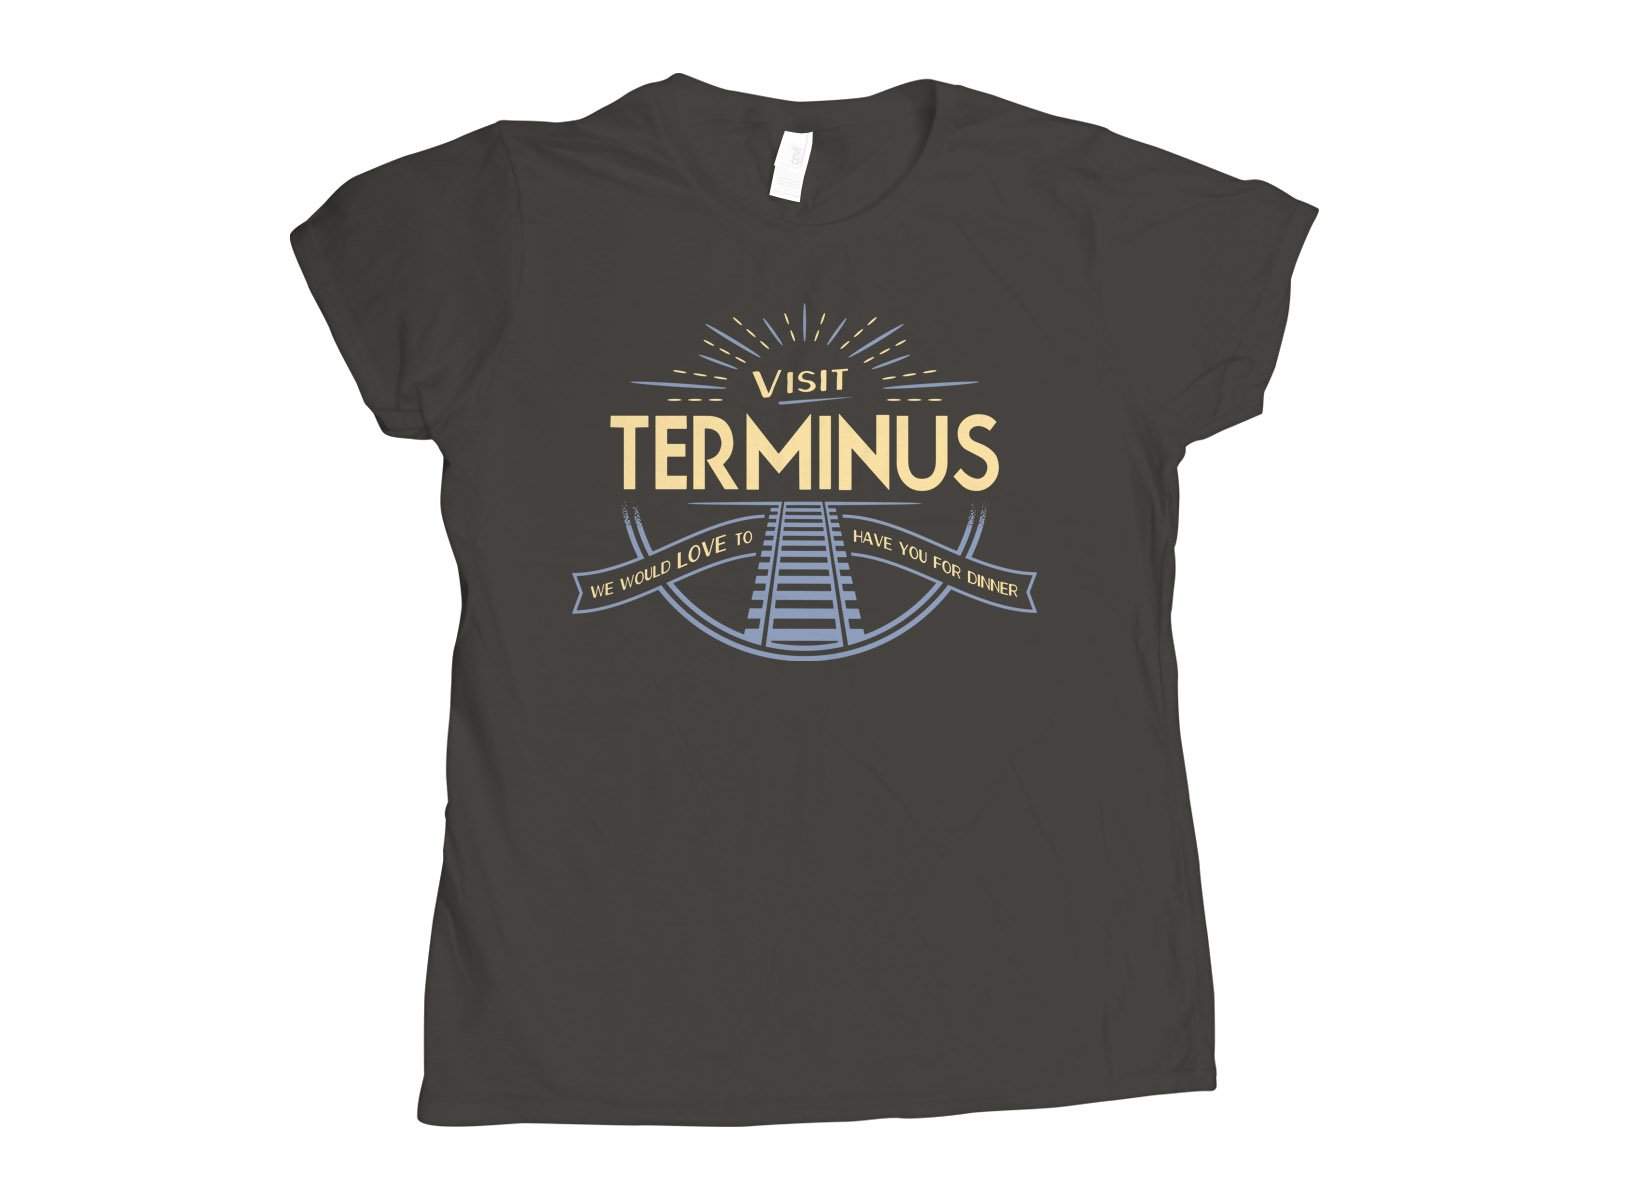 Visit Terminus on Womens T-Shirt